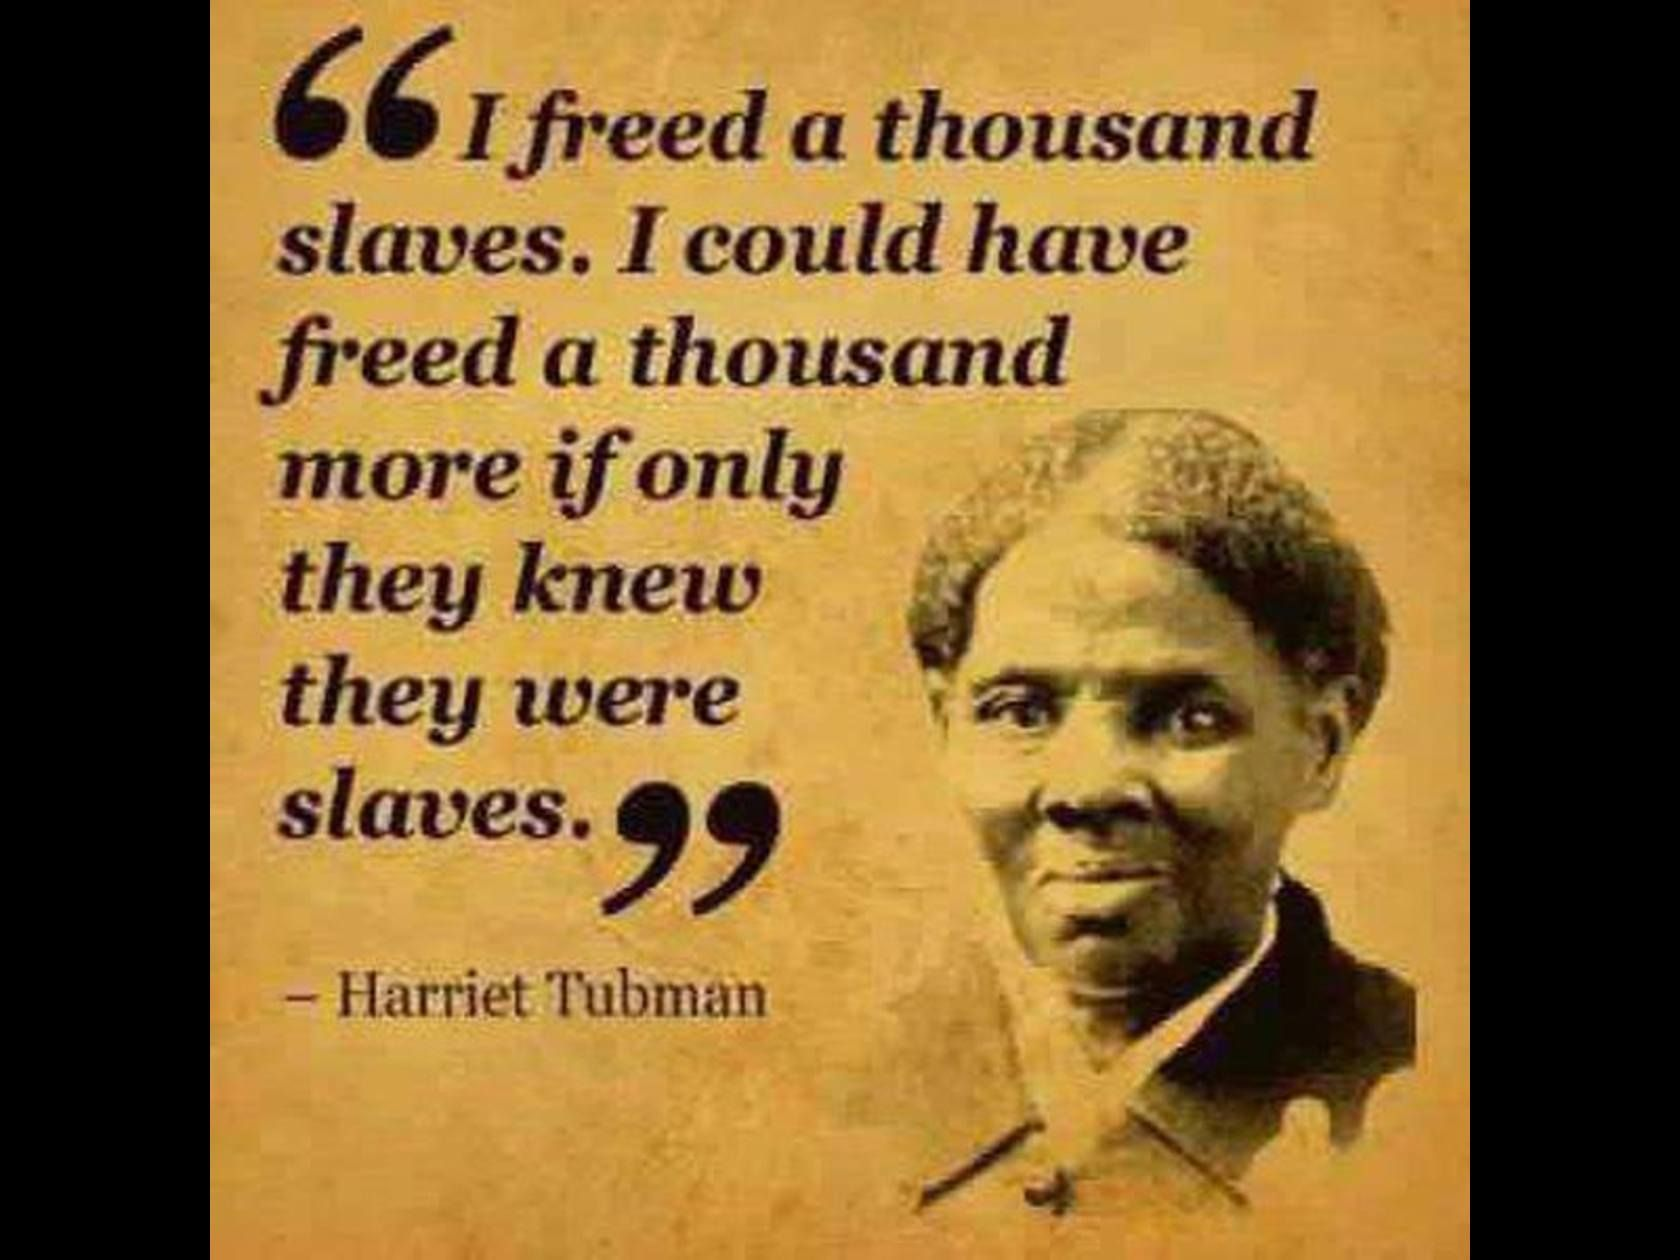 harriet tubman quotes - Google Search   English Rocks, Baby!   Pinterest